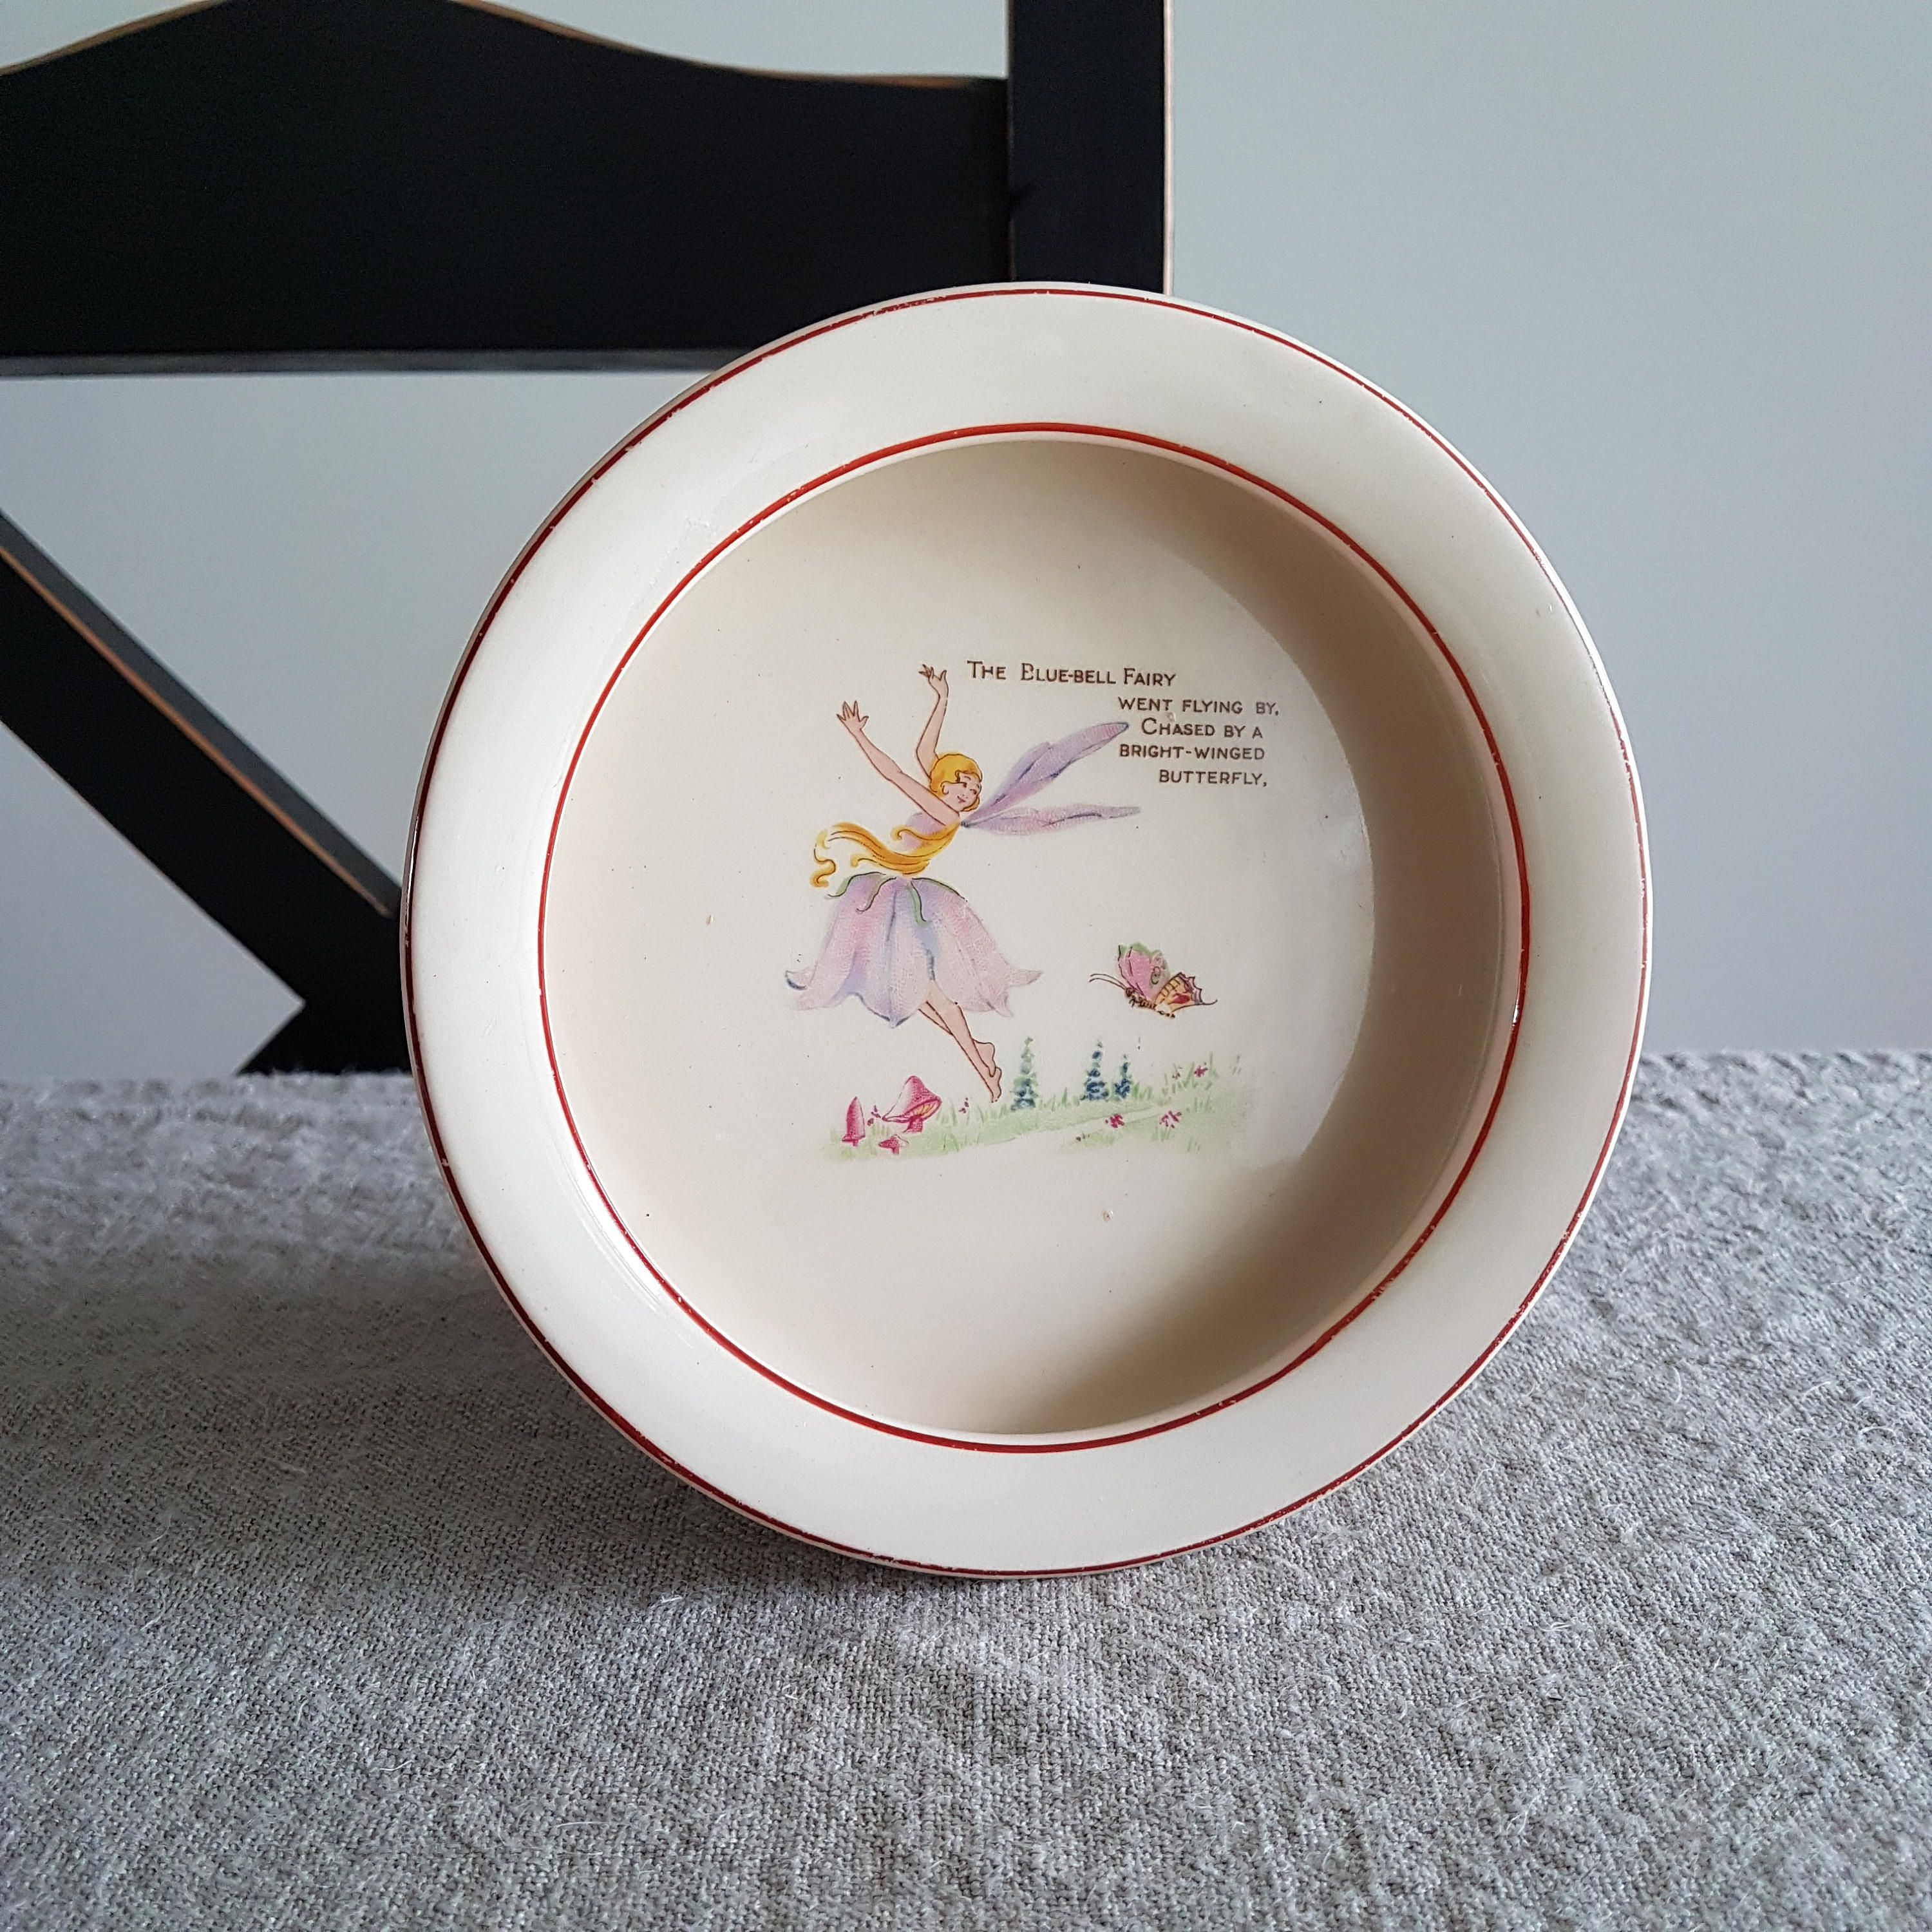 Vintage porcelain ceramic pink hand with sea shell tray dish ring dish decorative sculpture kitsch beautiful delicate made in Japan